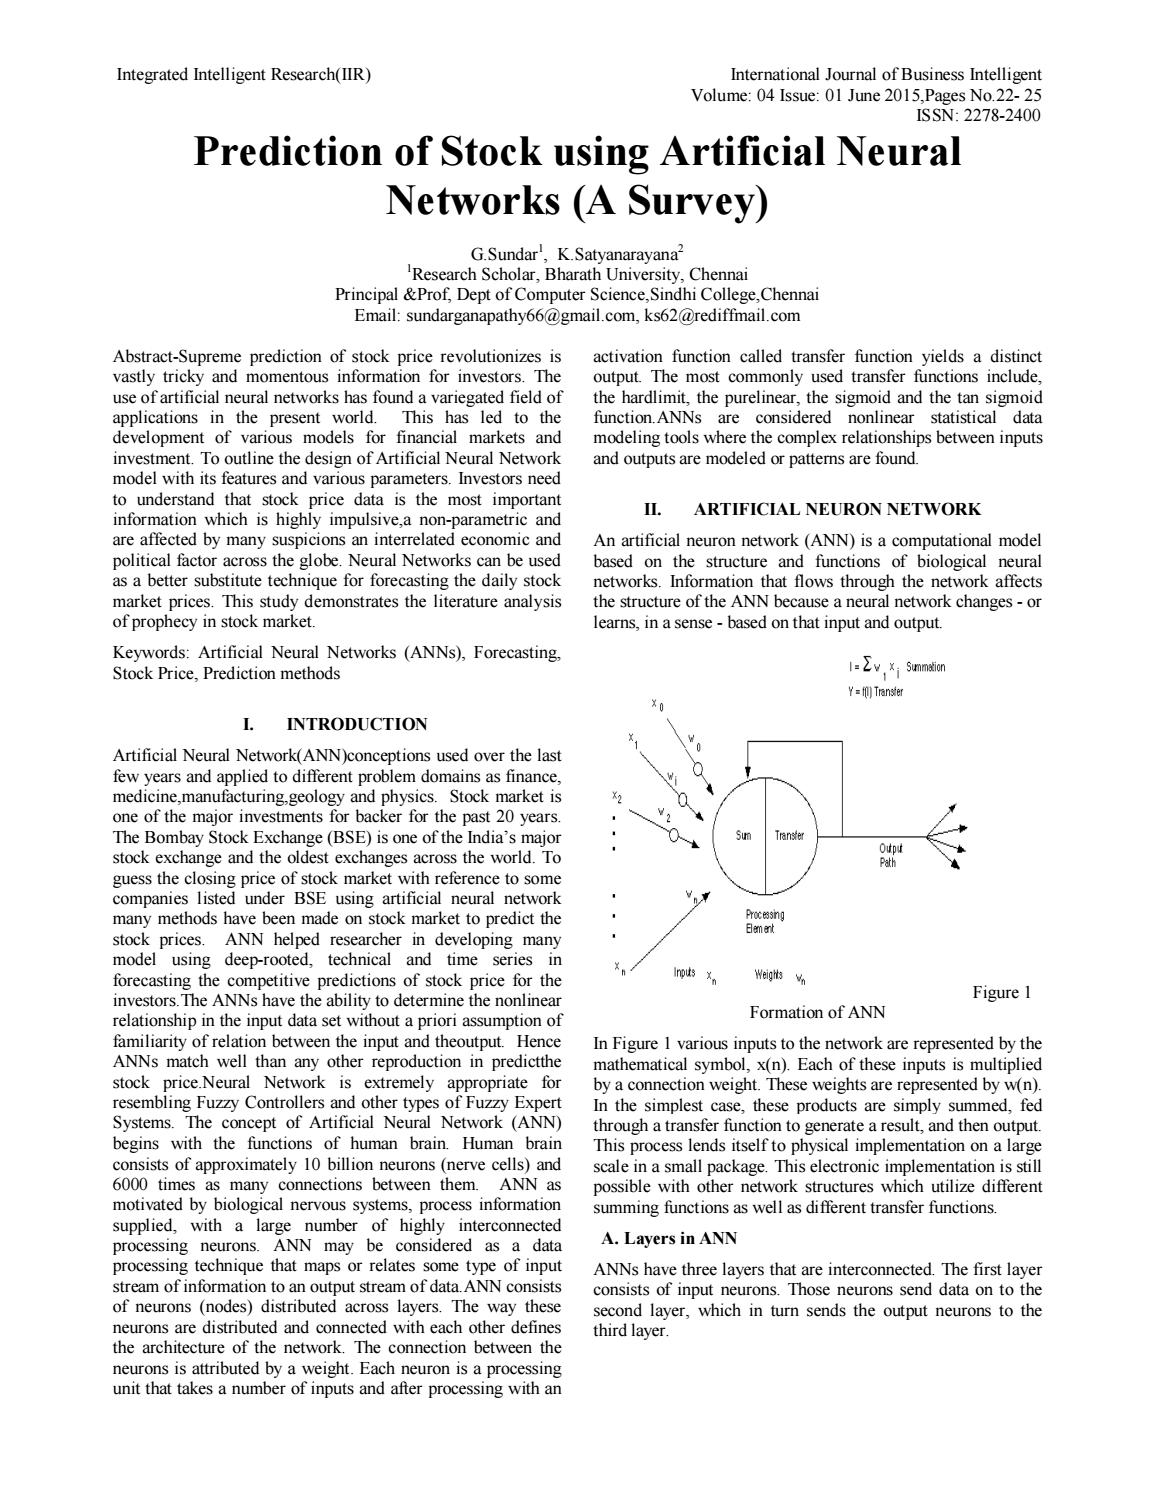 Prediction of Stock using Artificial Neural Networks (A